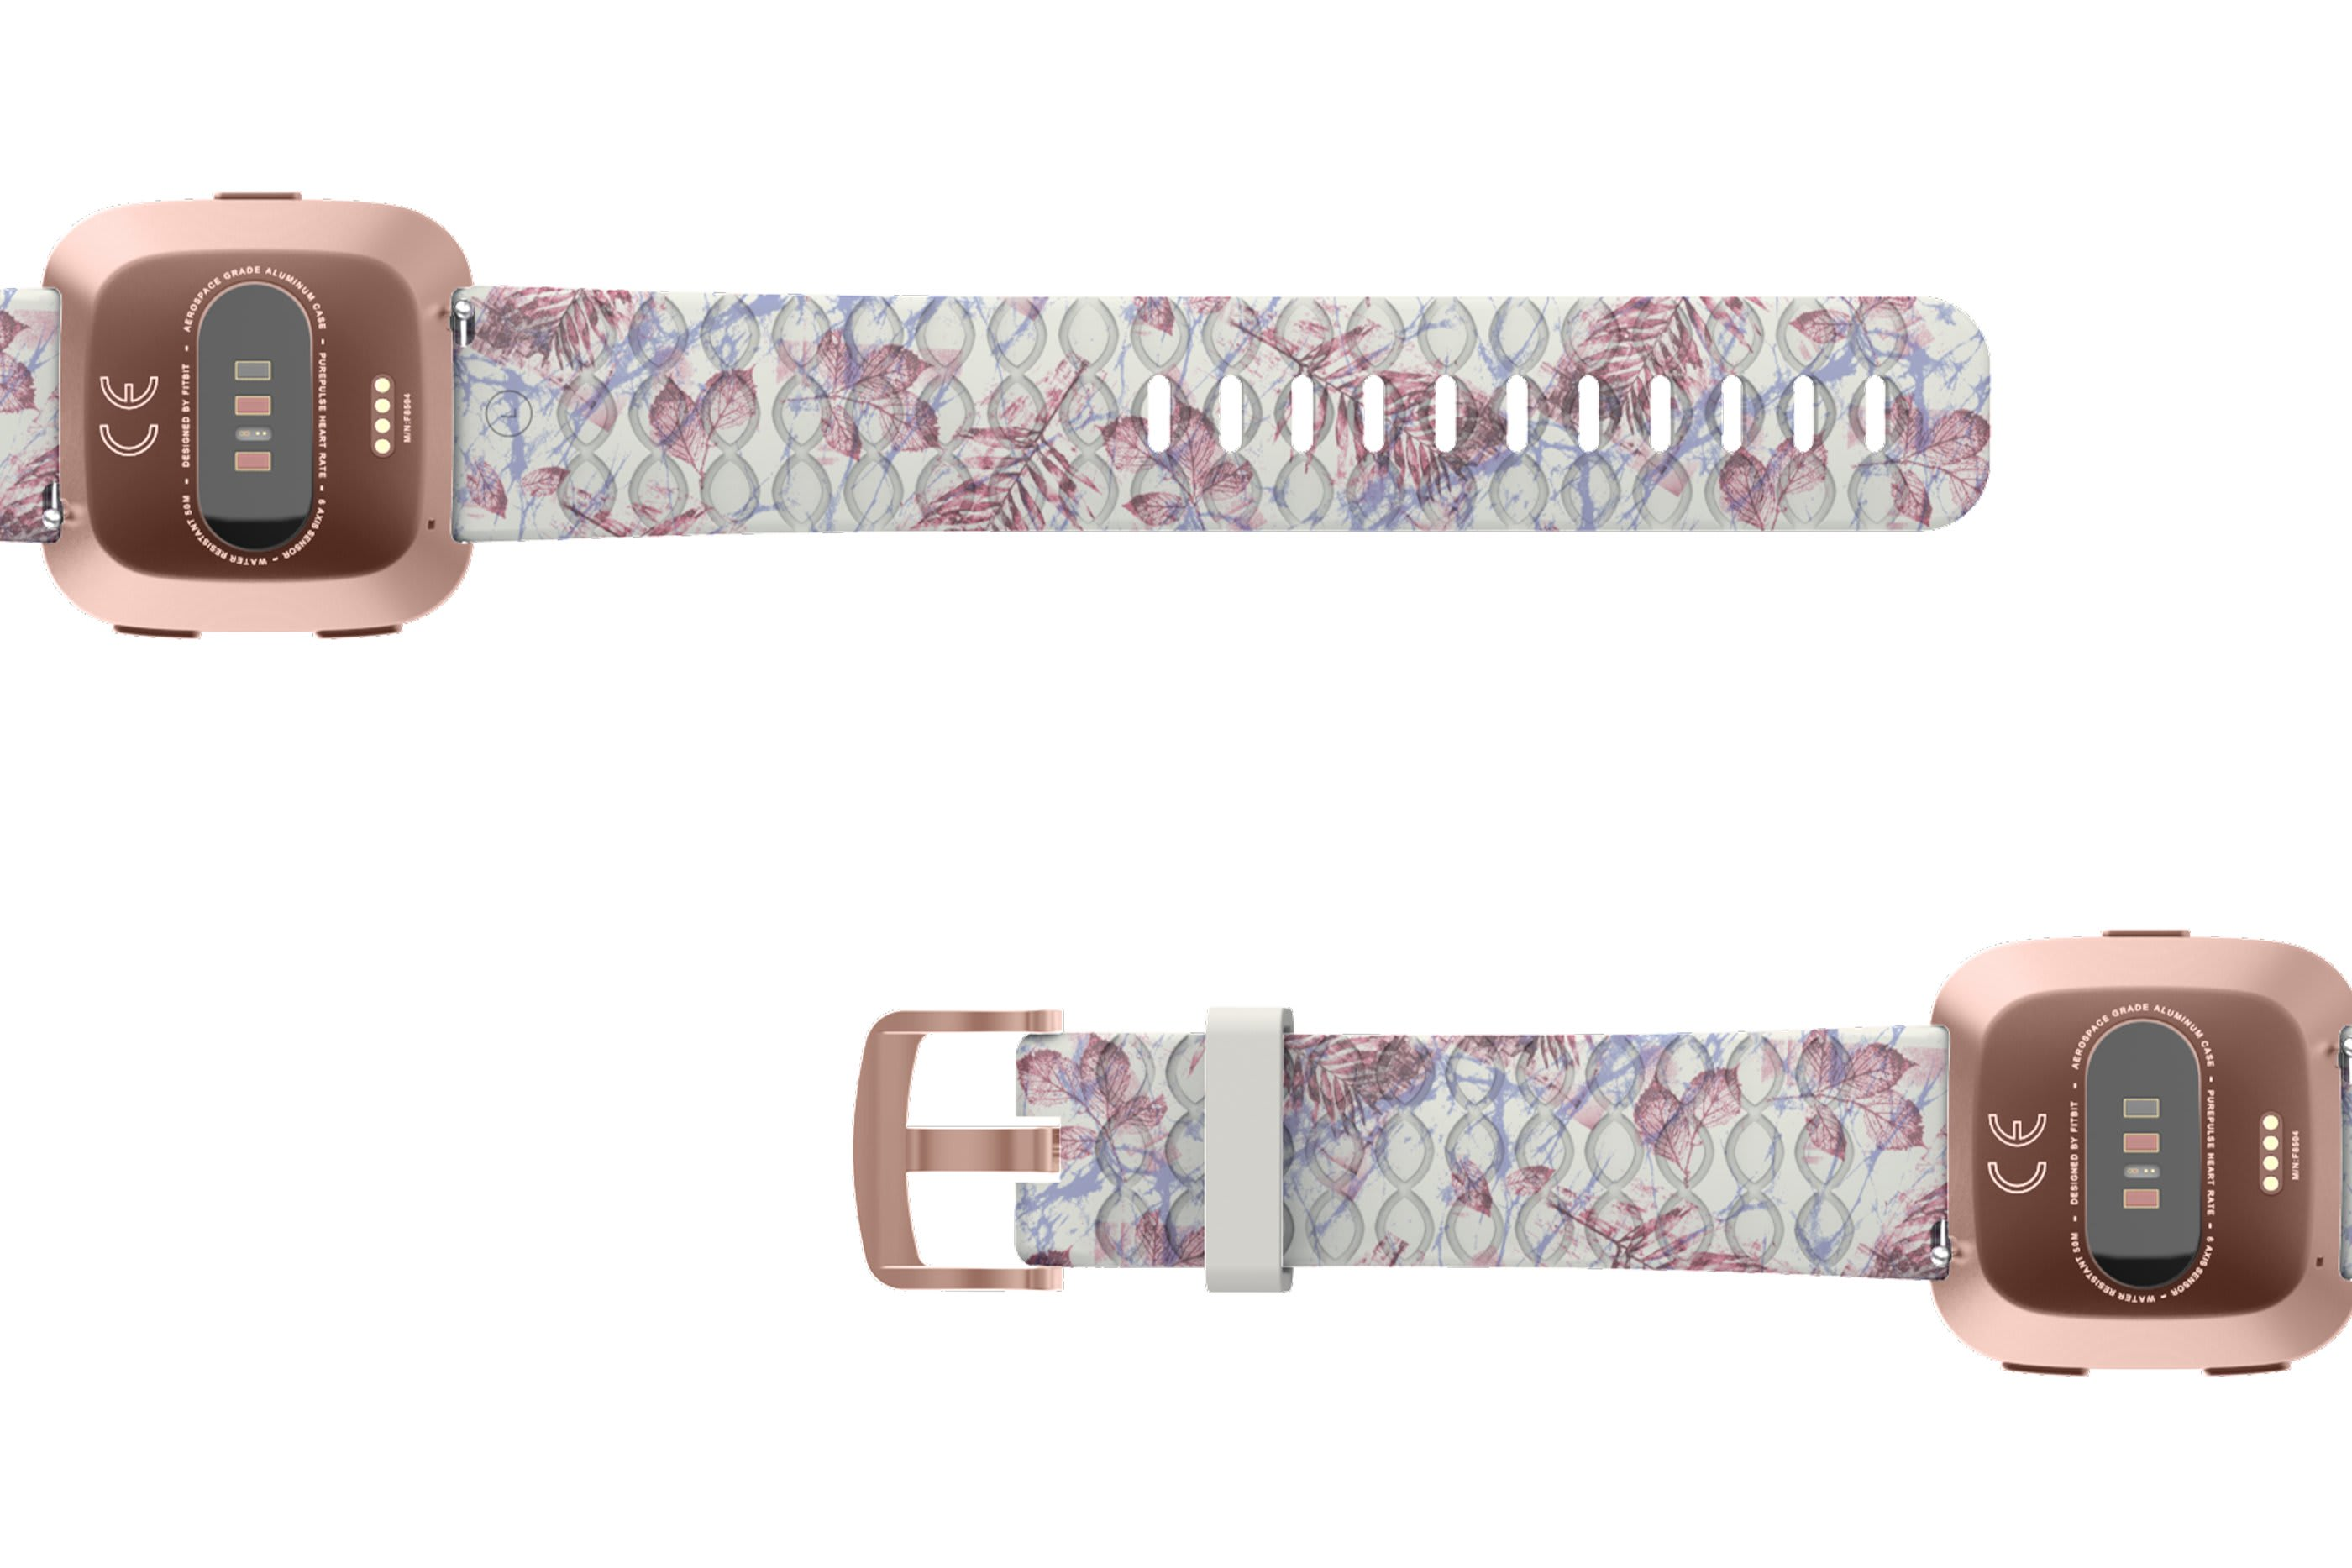 Breeze Fitbit Versa   watch band with rose gold hardware viewed bottom up